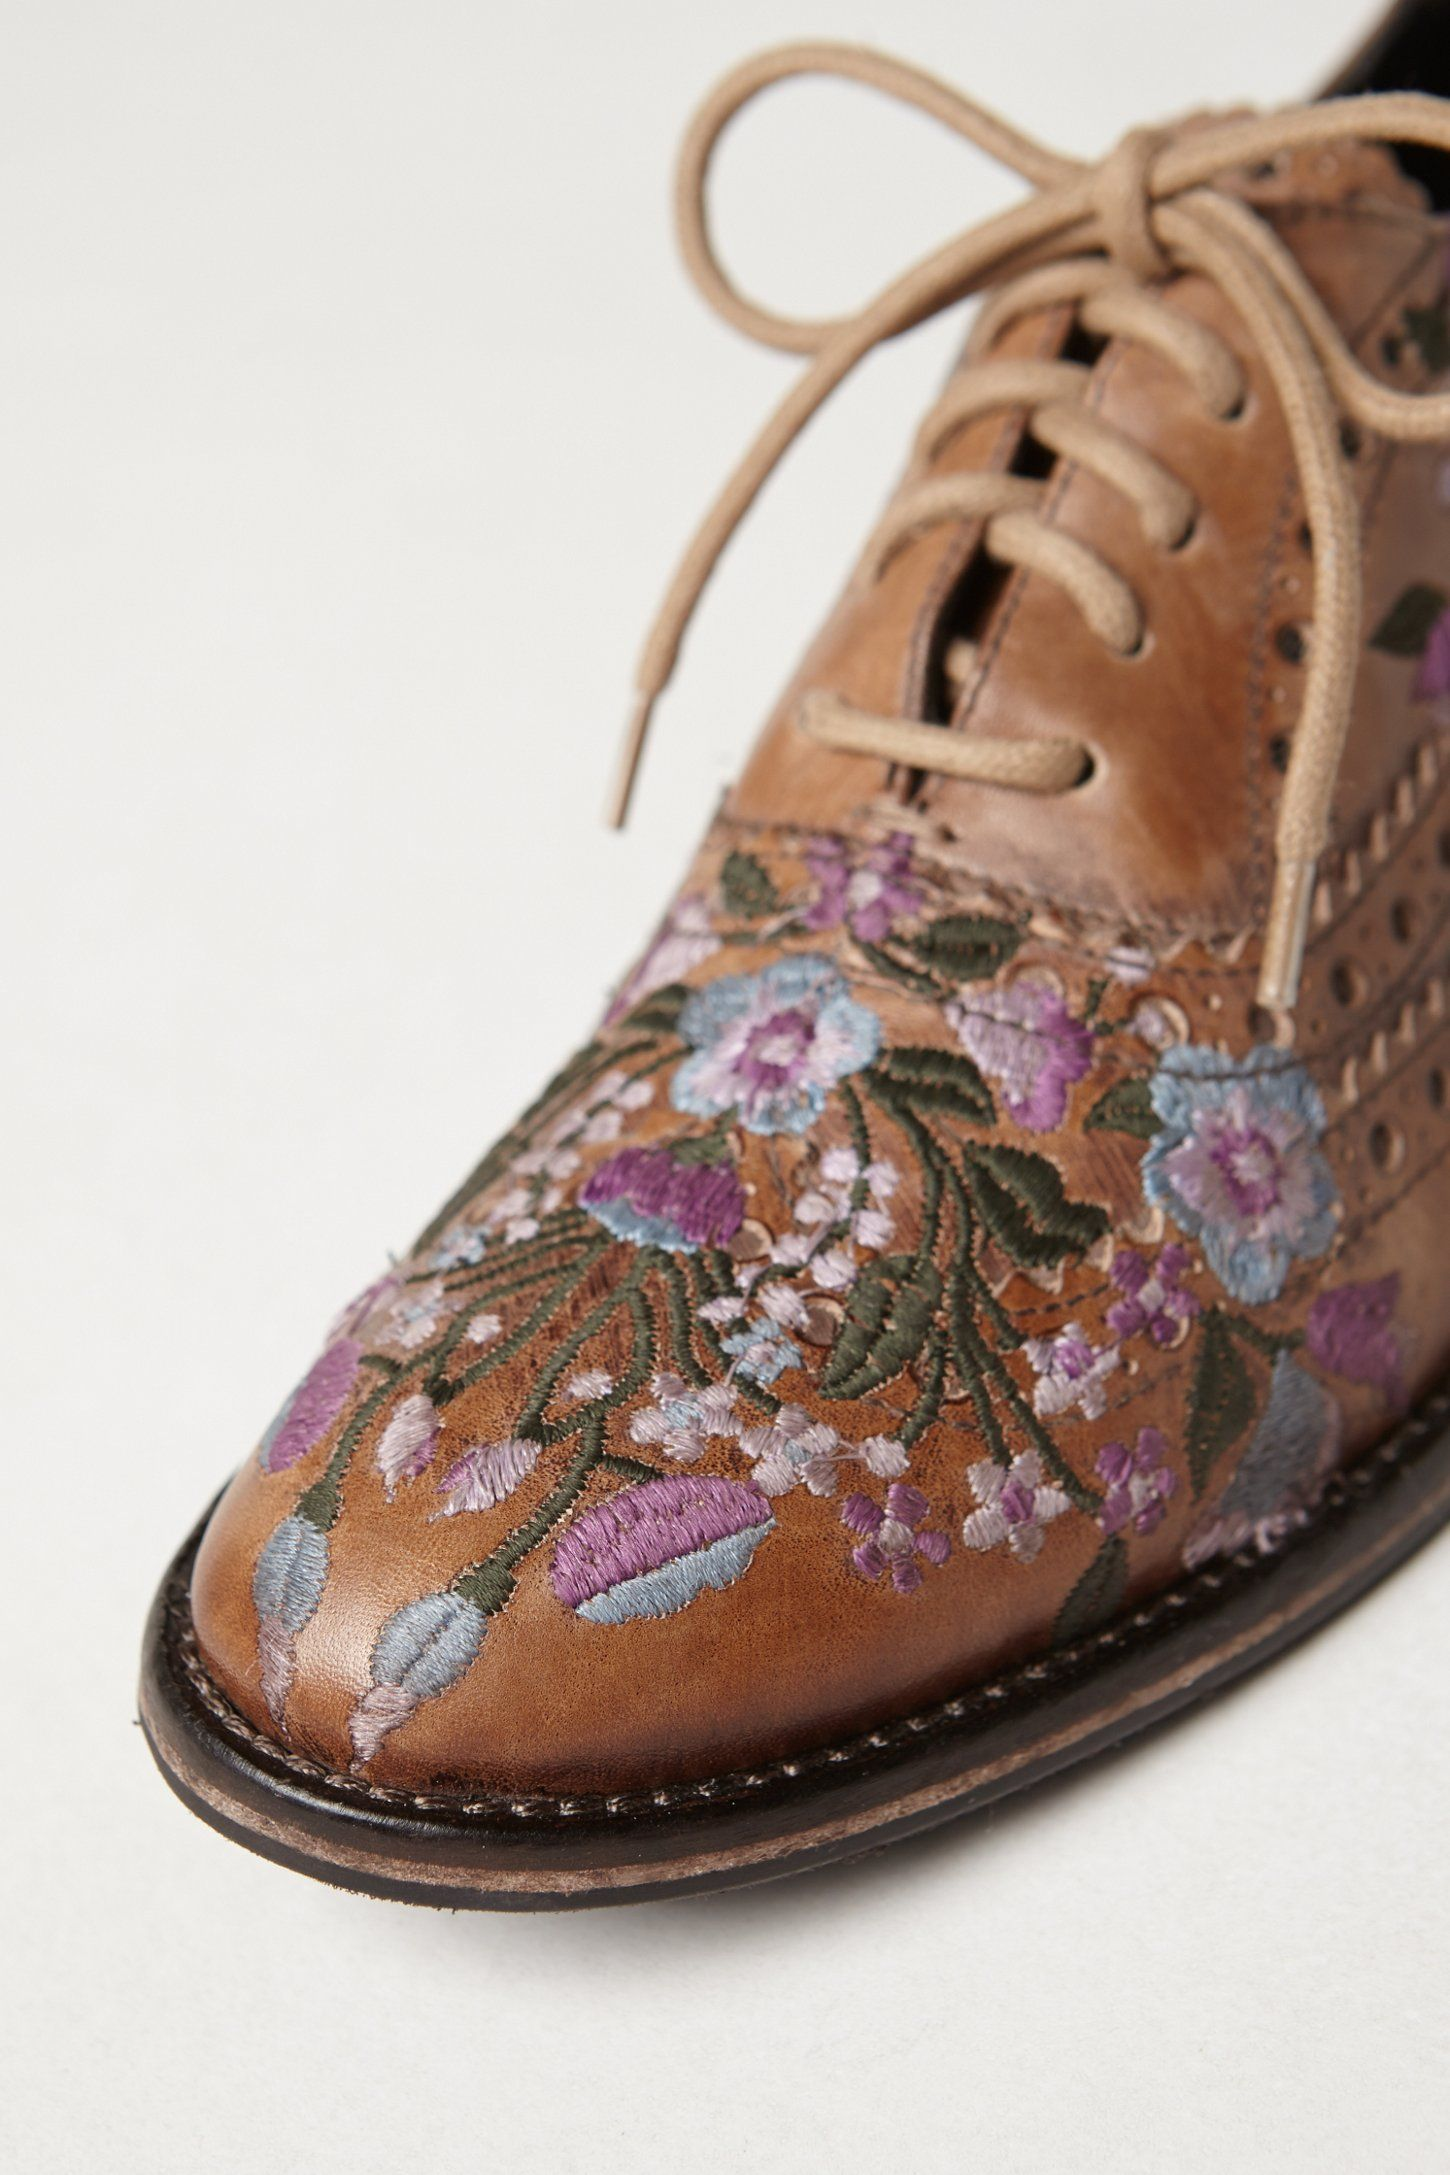 Buy How to flowered wear shoes pictures trends